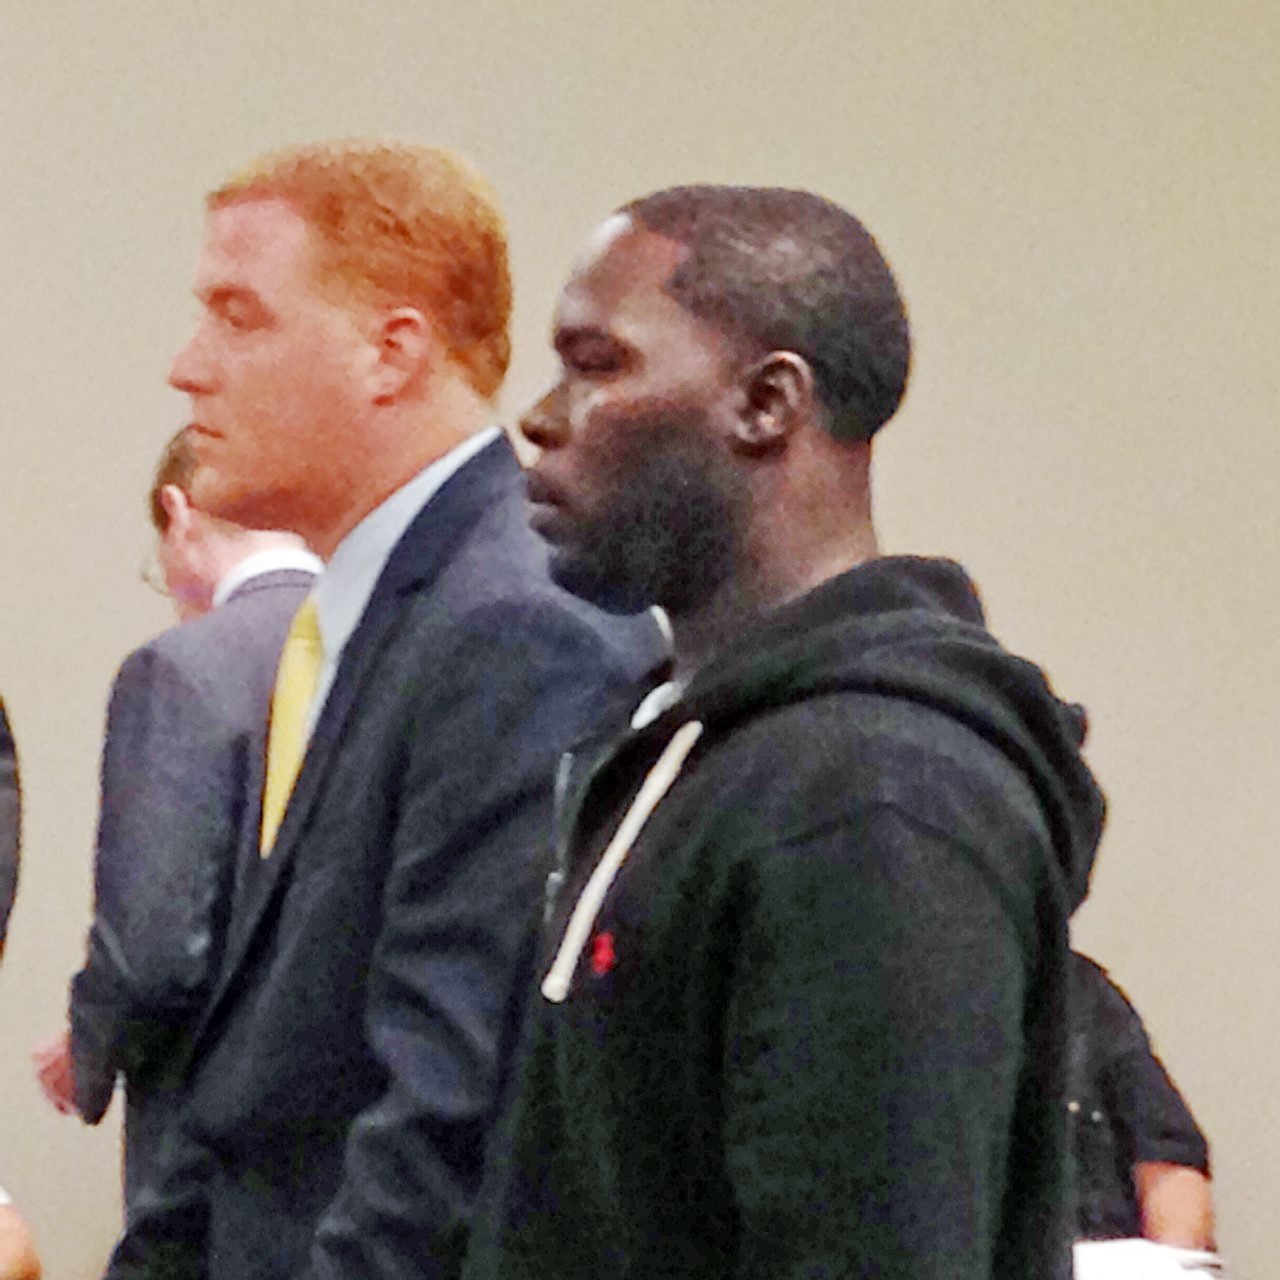 Alleged opiate dealer Dellsean Hamilton is shown with defense attorney Michael D'Amico at a City Court hearing last summer.